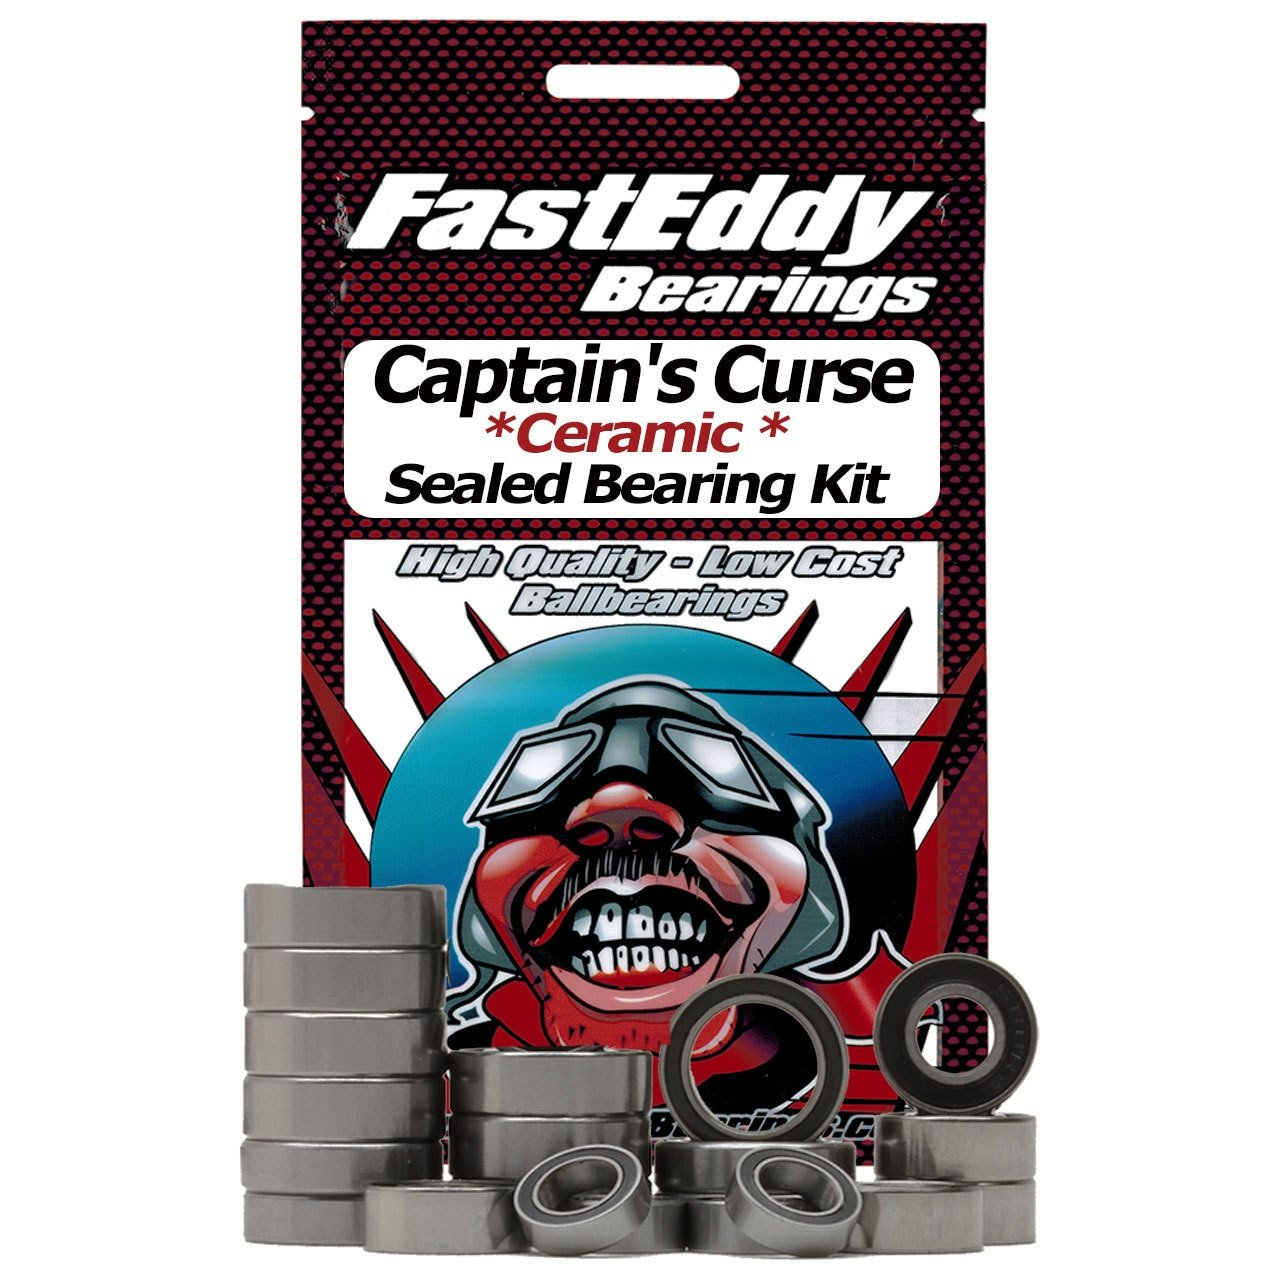 Traxxas Captains Curse Ceramic Rubber Sealed Ball Bearing Kit for RC Cars Toys & Games Model Building Kits & Tools